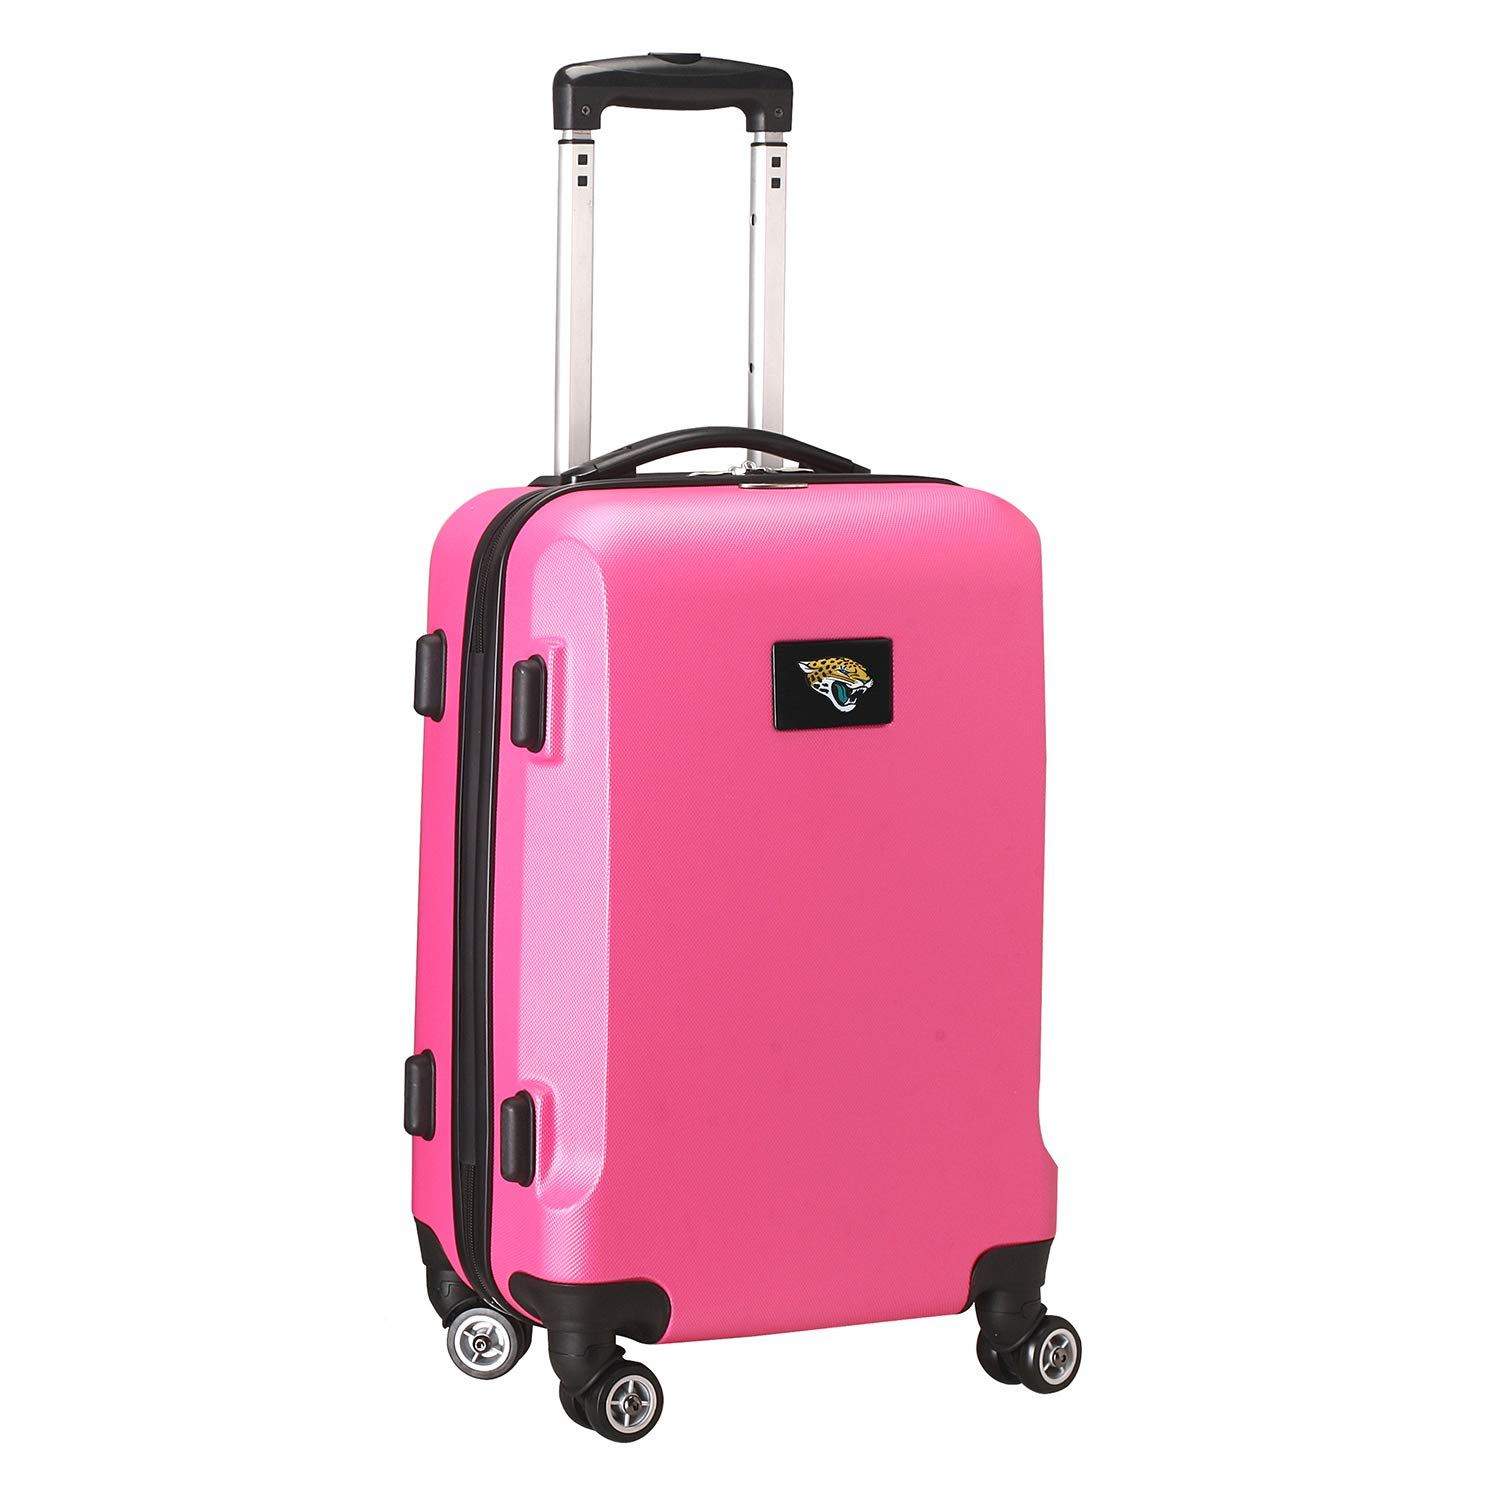 Denco NFL Jacksonville Jaguars Carry-On Hardcase Luggage Spinner, Pink